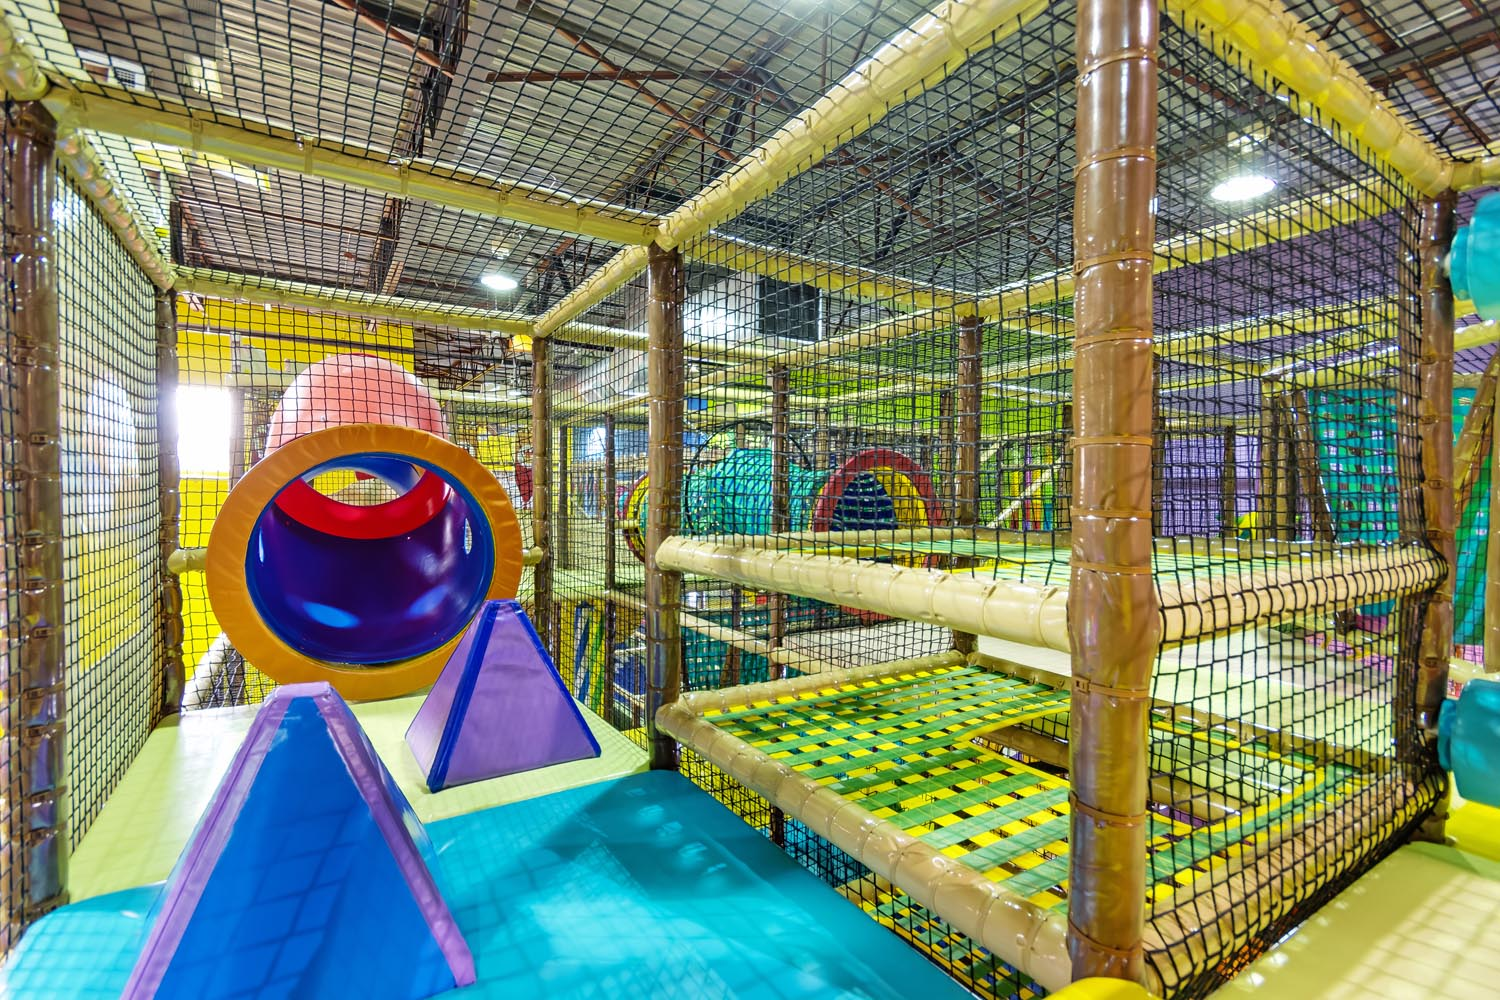 Indoor Jungle Gym at Playtopia